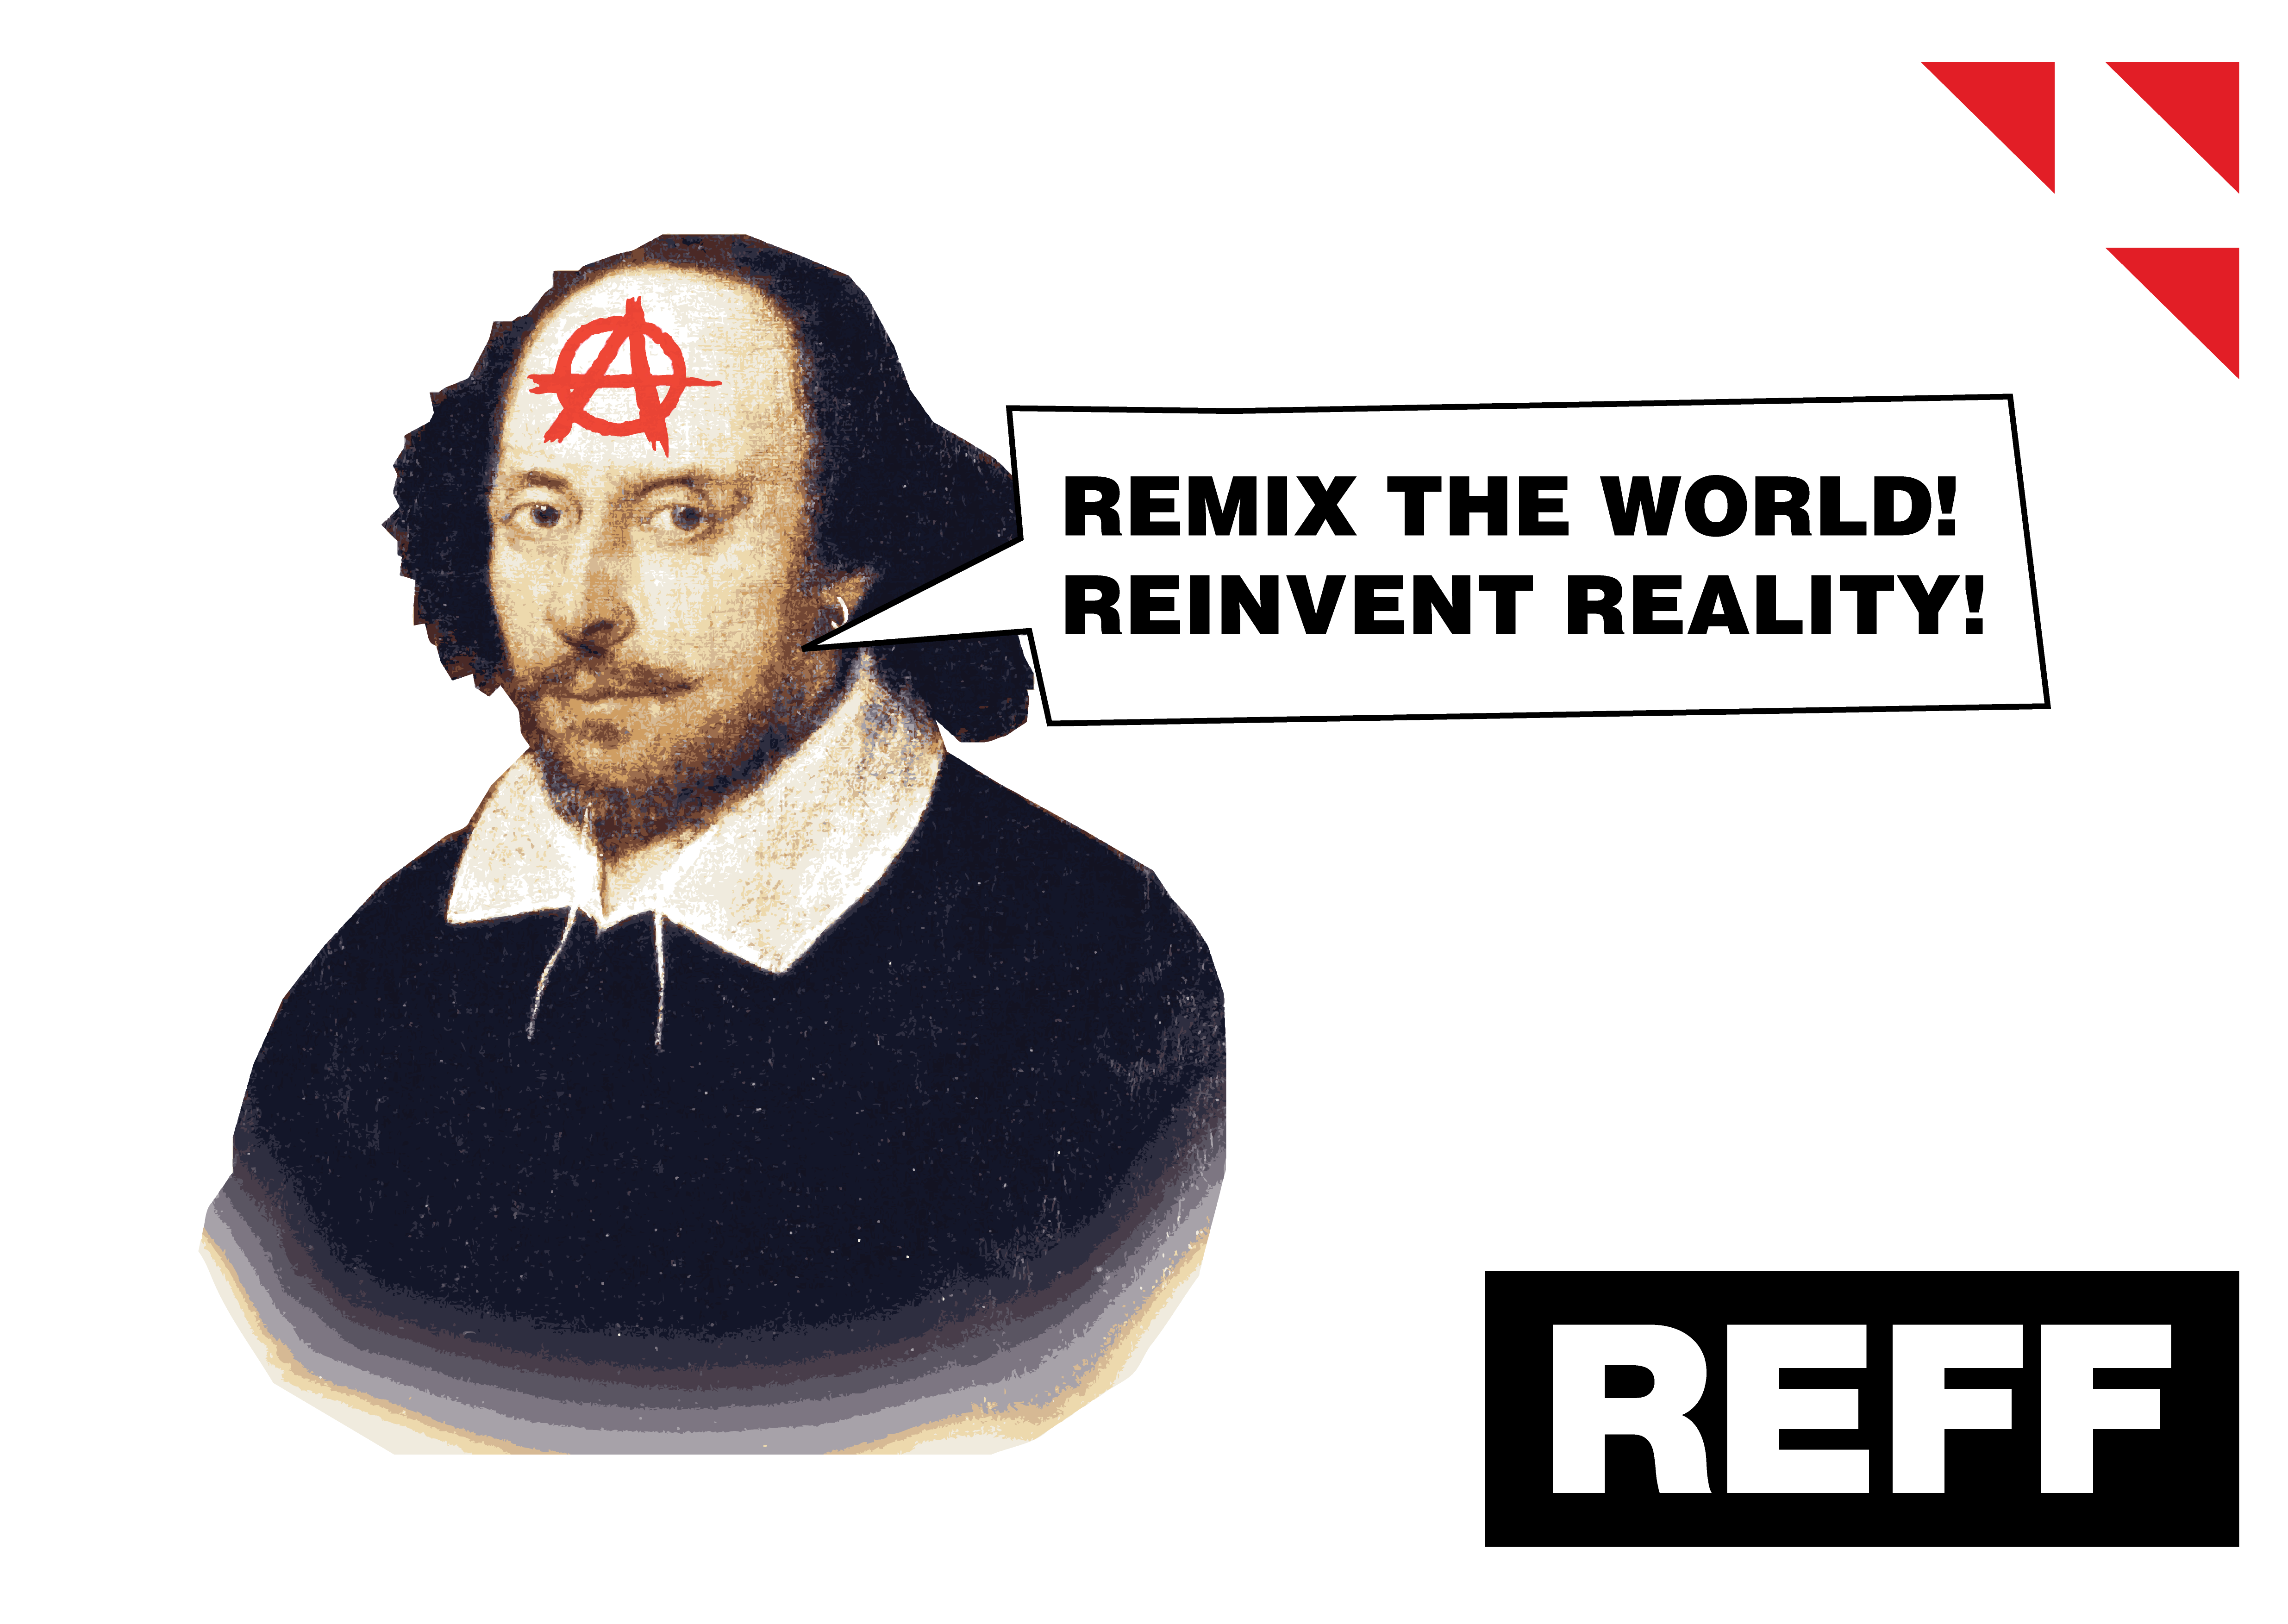 REFF Reinvent the World, Remix Reality